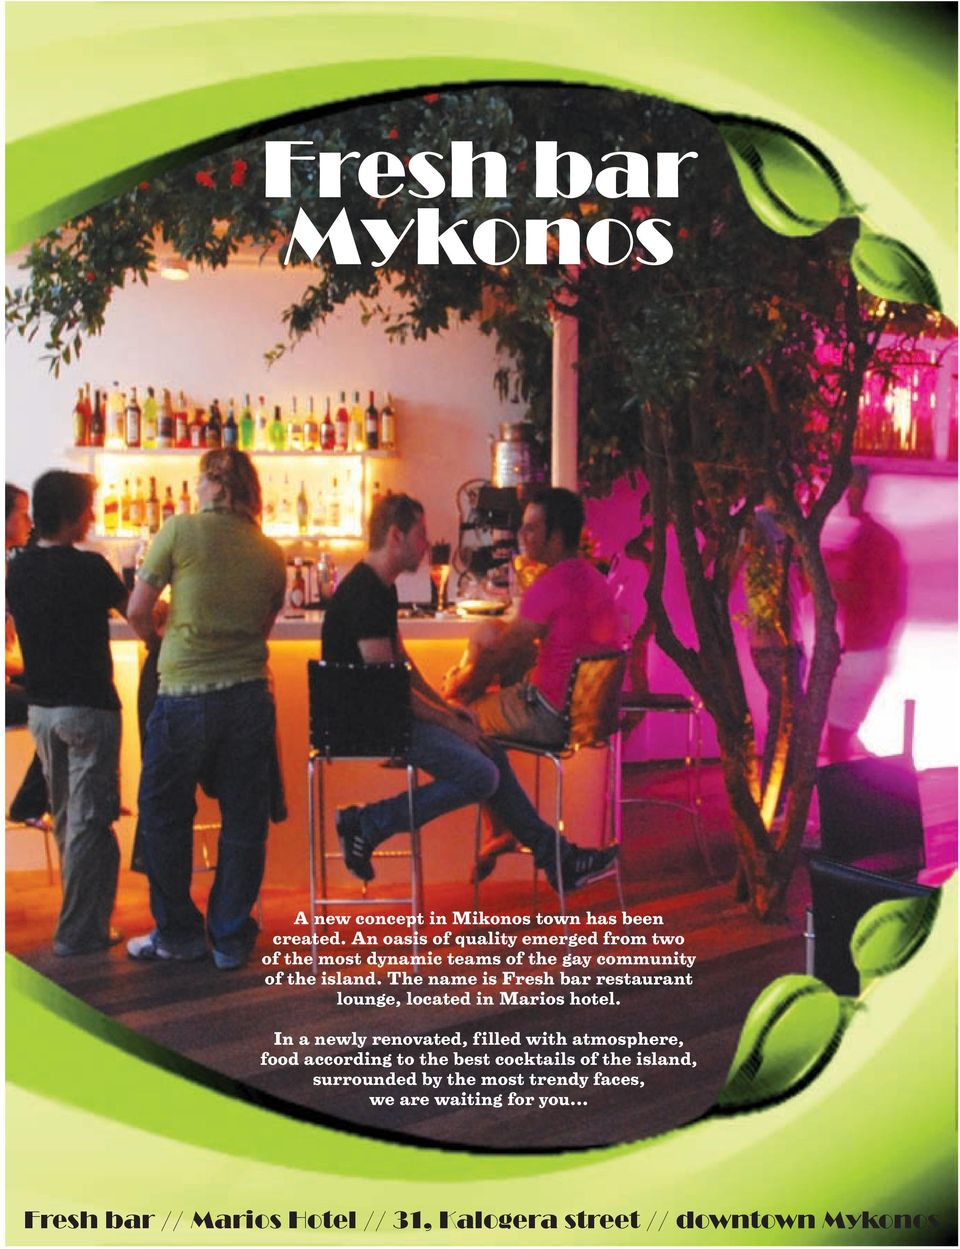 The name is Fresh bar restaurant lounge, located in Marios hotel.